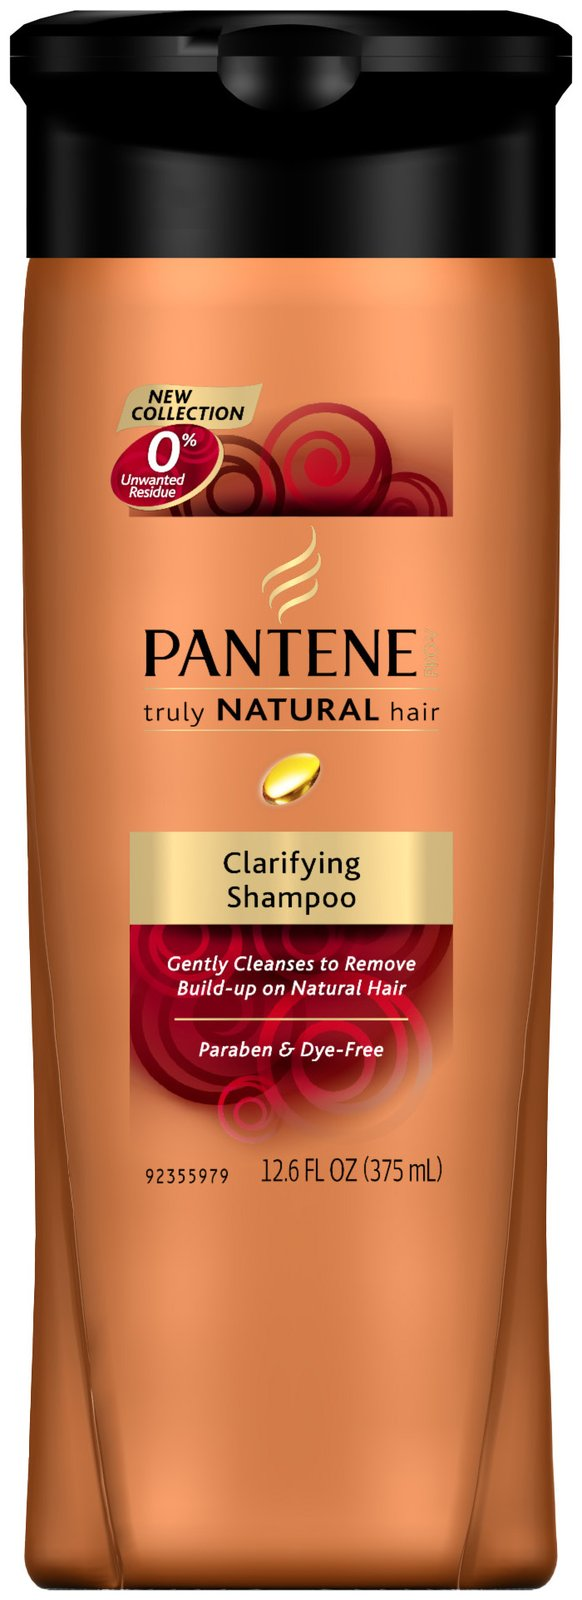 Pantene Truly Natural Hair Clarifying Shampoo 12.6oz